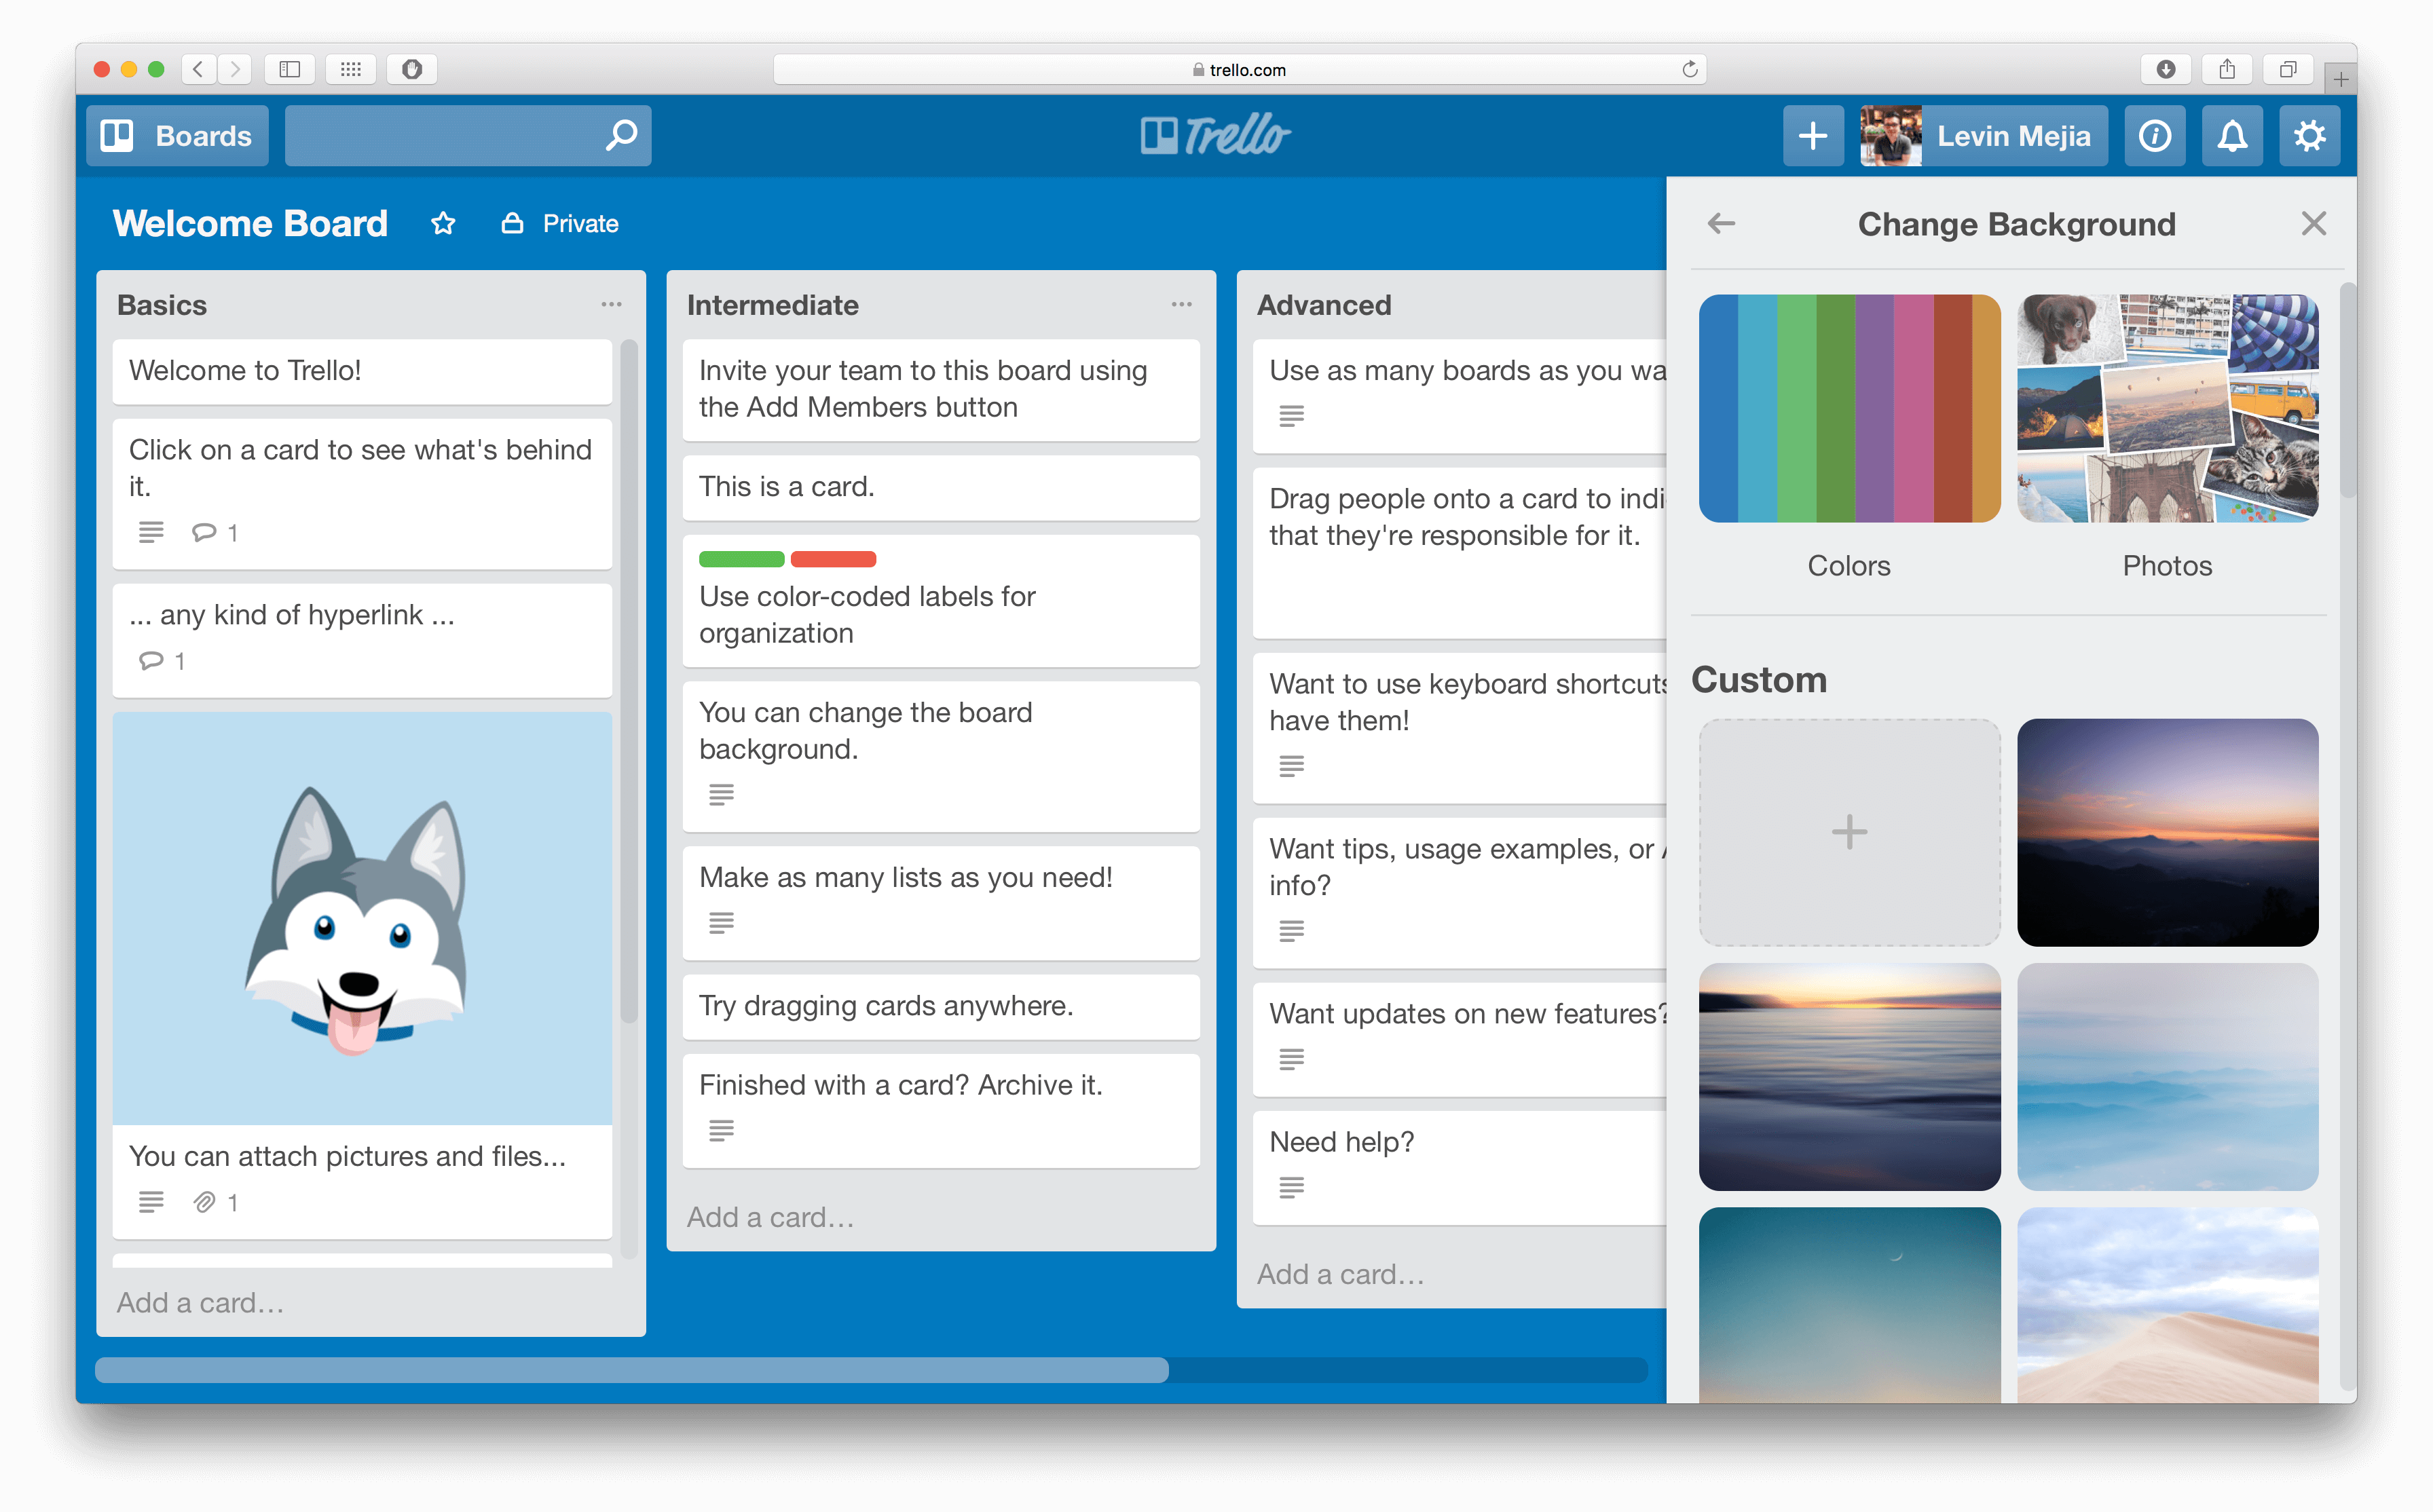 Change backgrounds in Trello